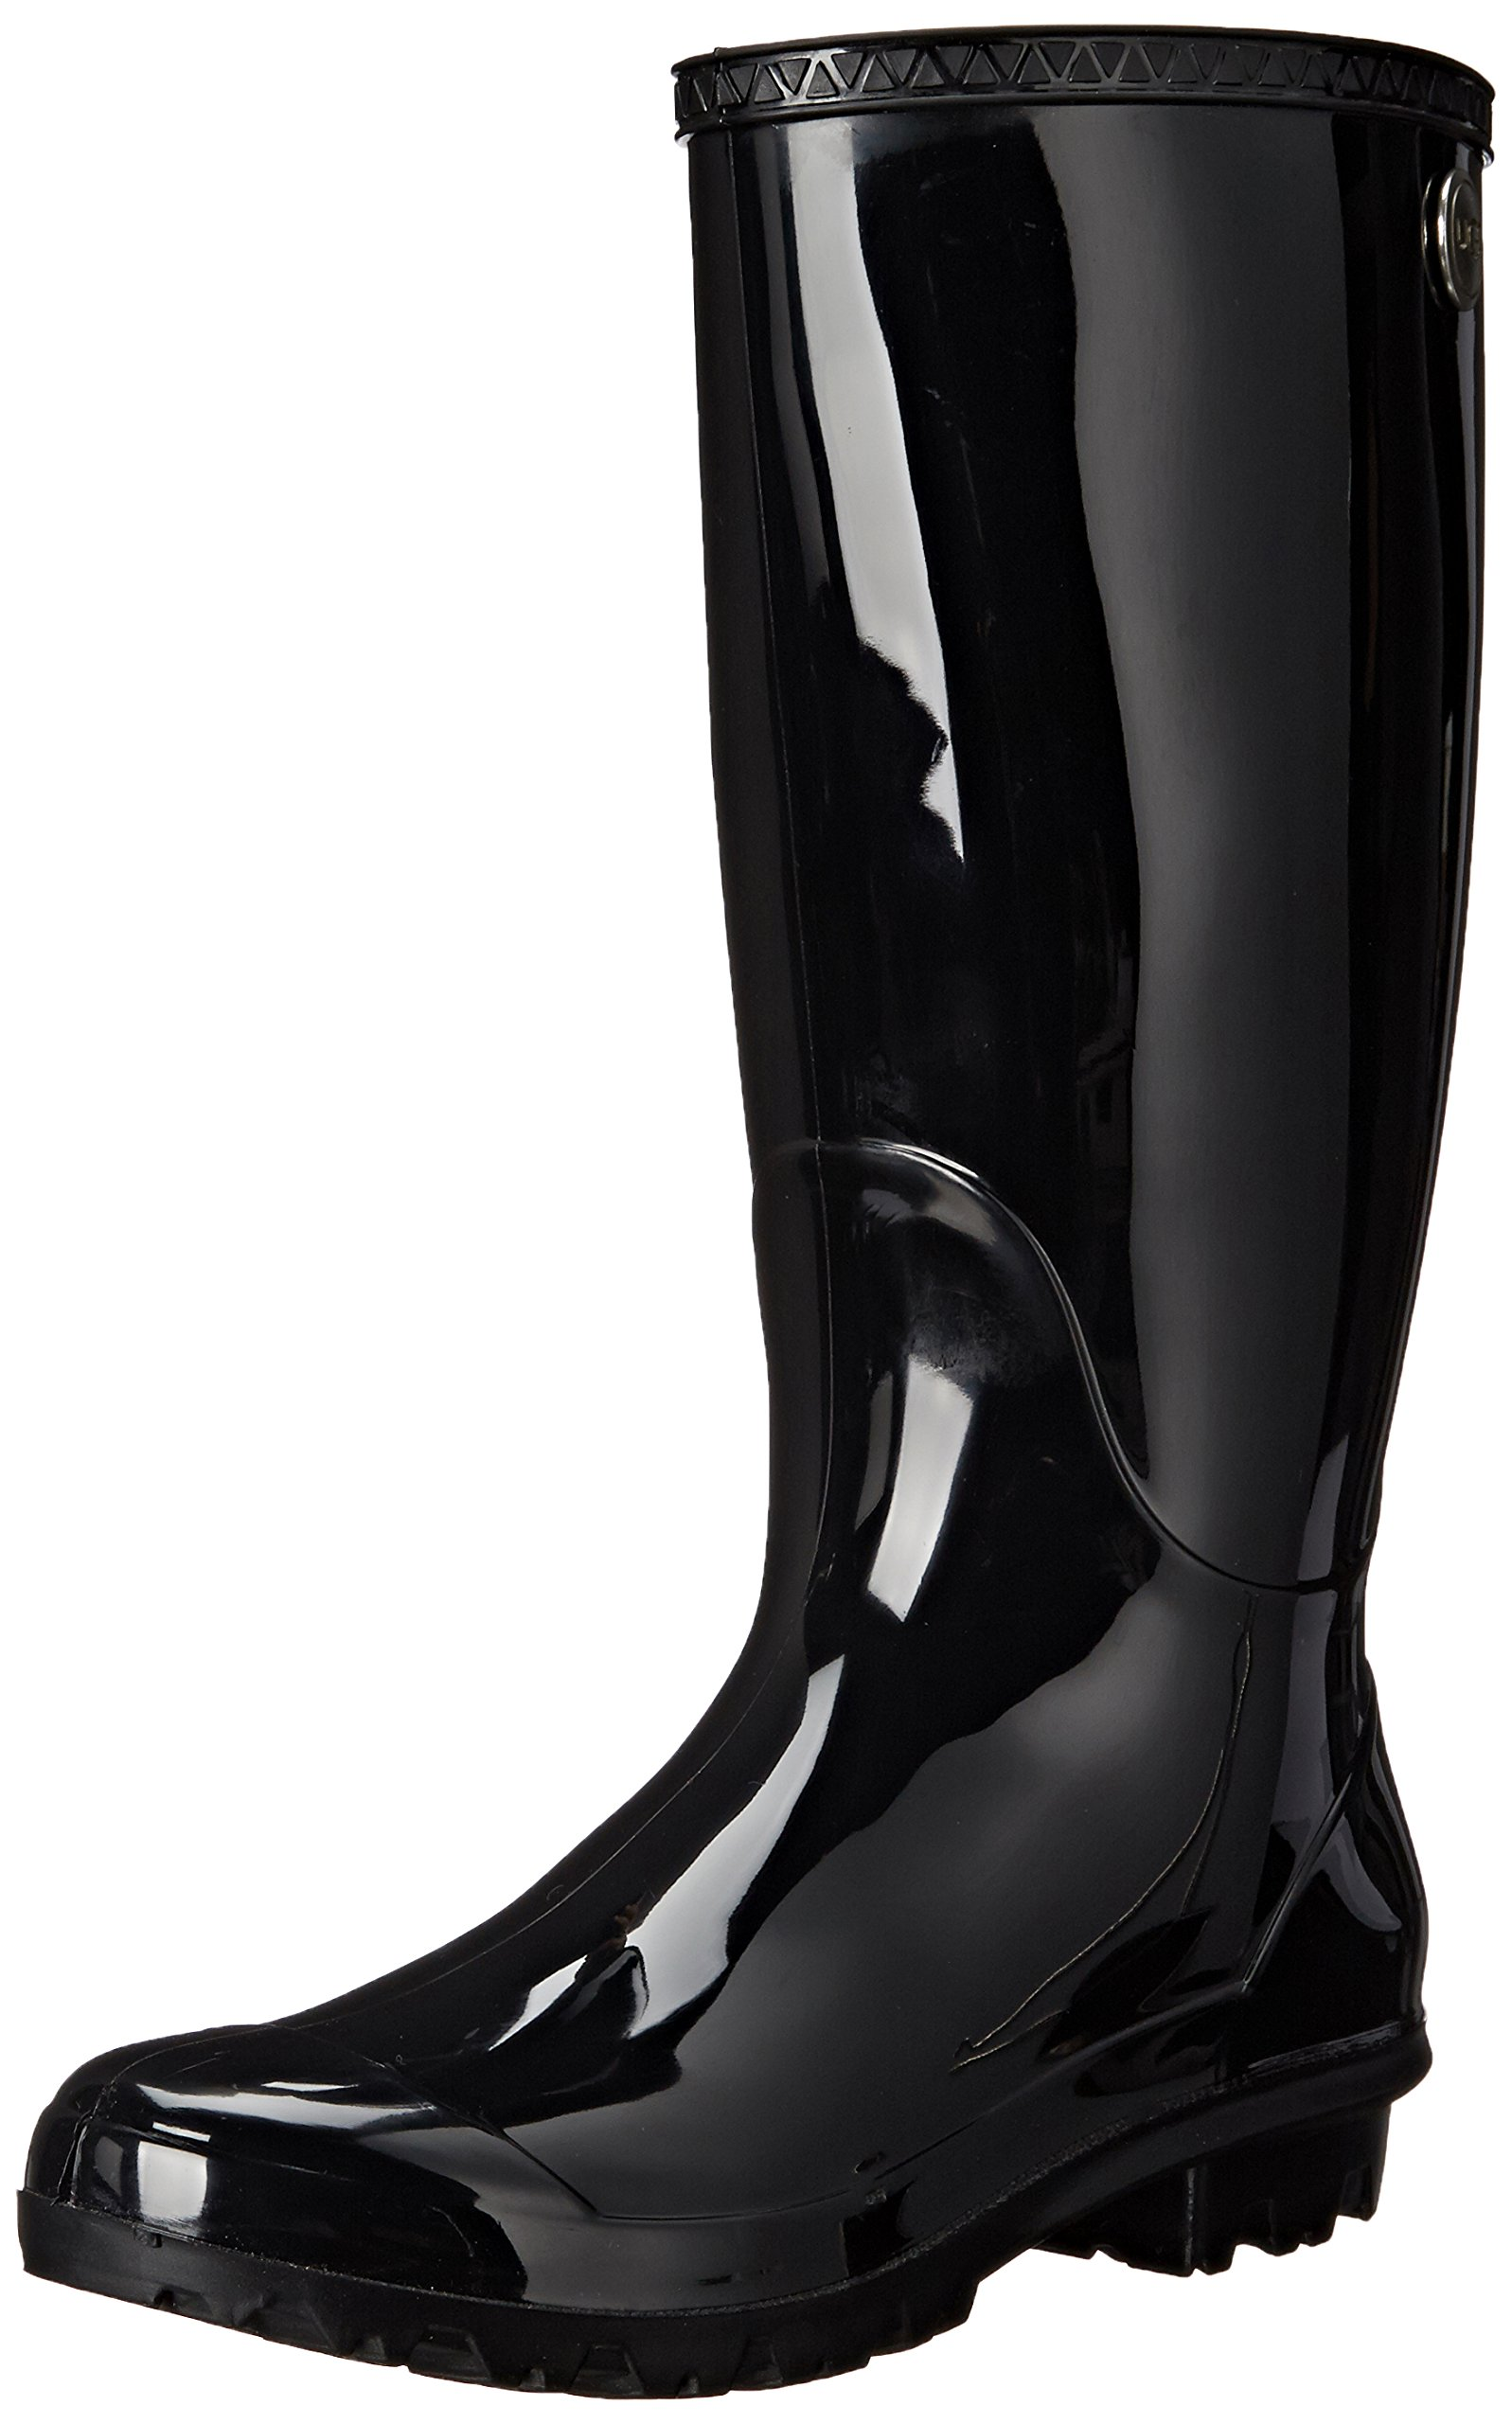 UGG Women's Shaye Rain Boot, Black, 8 B US